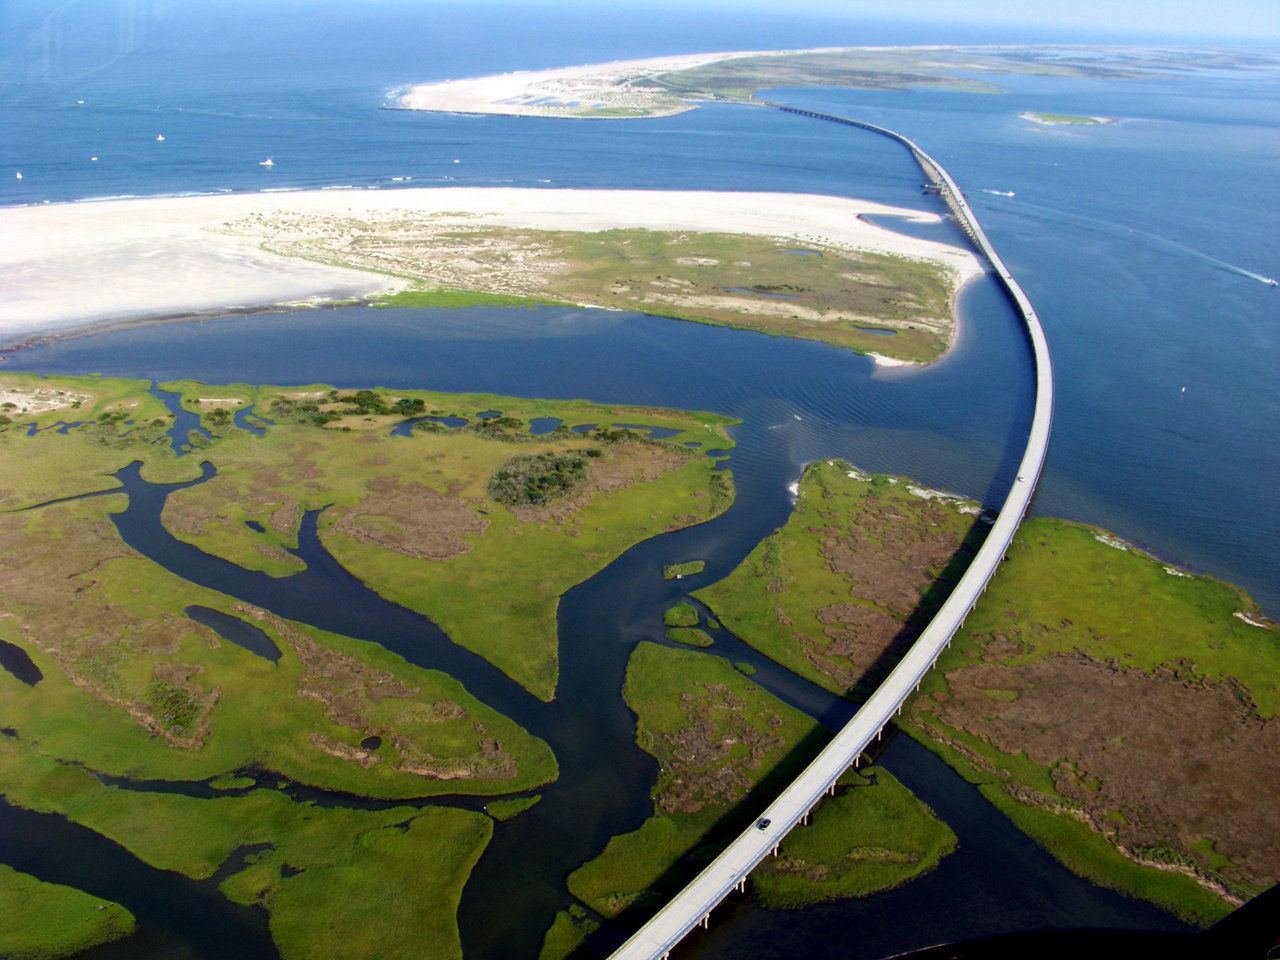 Obx biplanes offers exciting biplane rides over the outer for Oregon inlet bridge fishing report